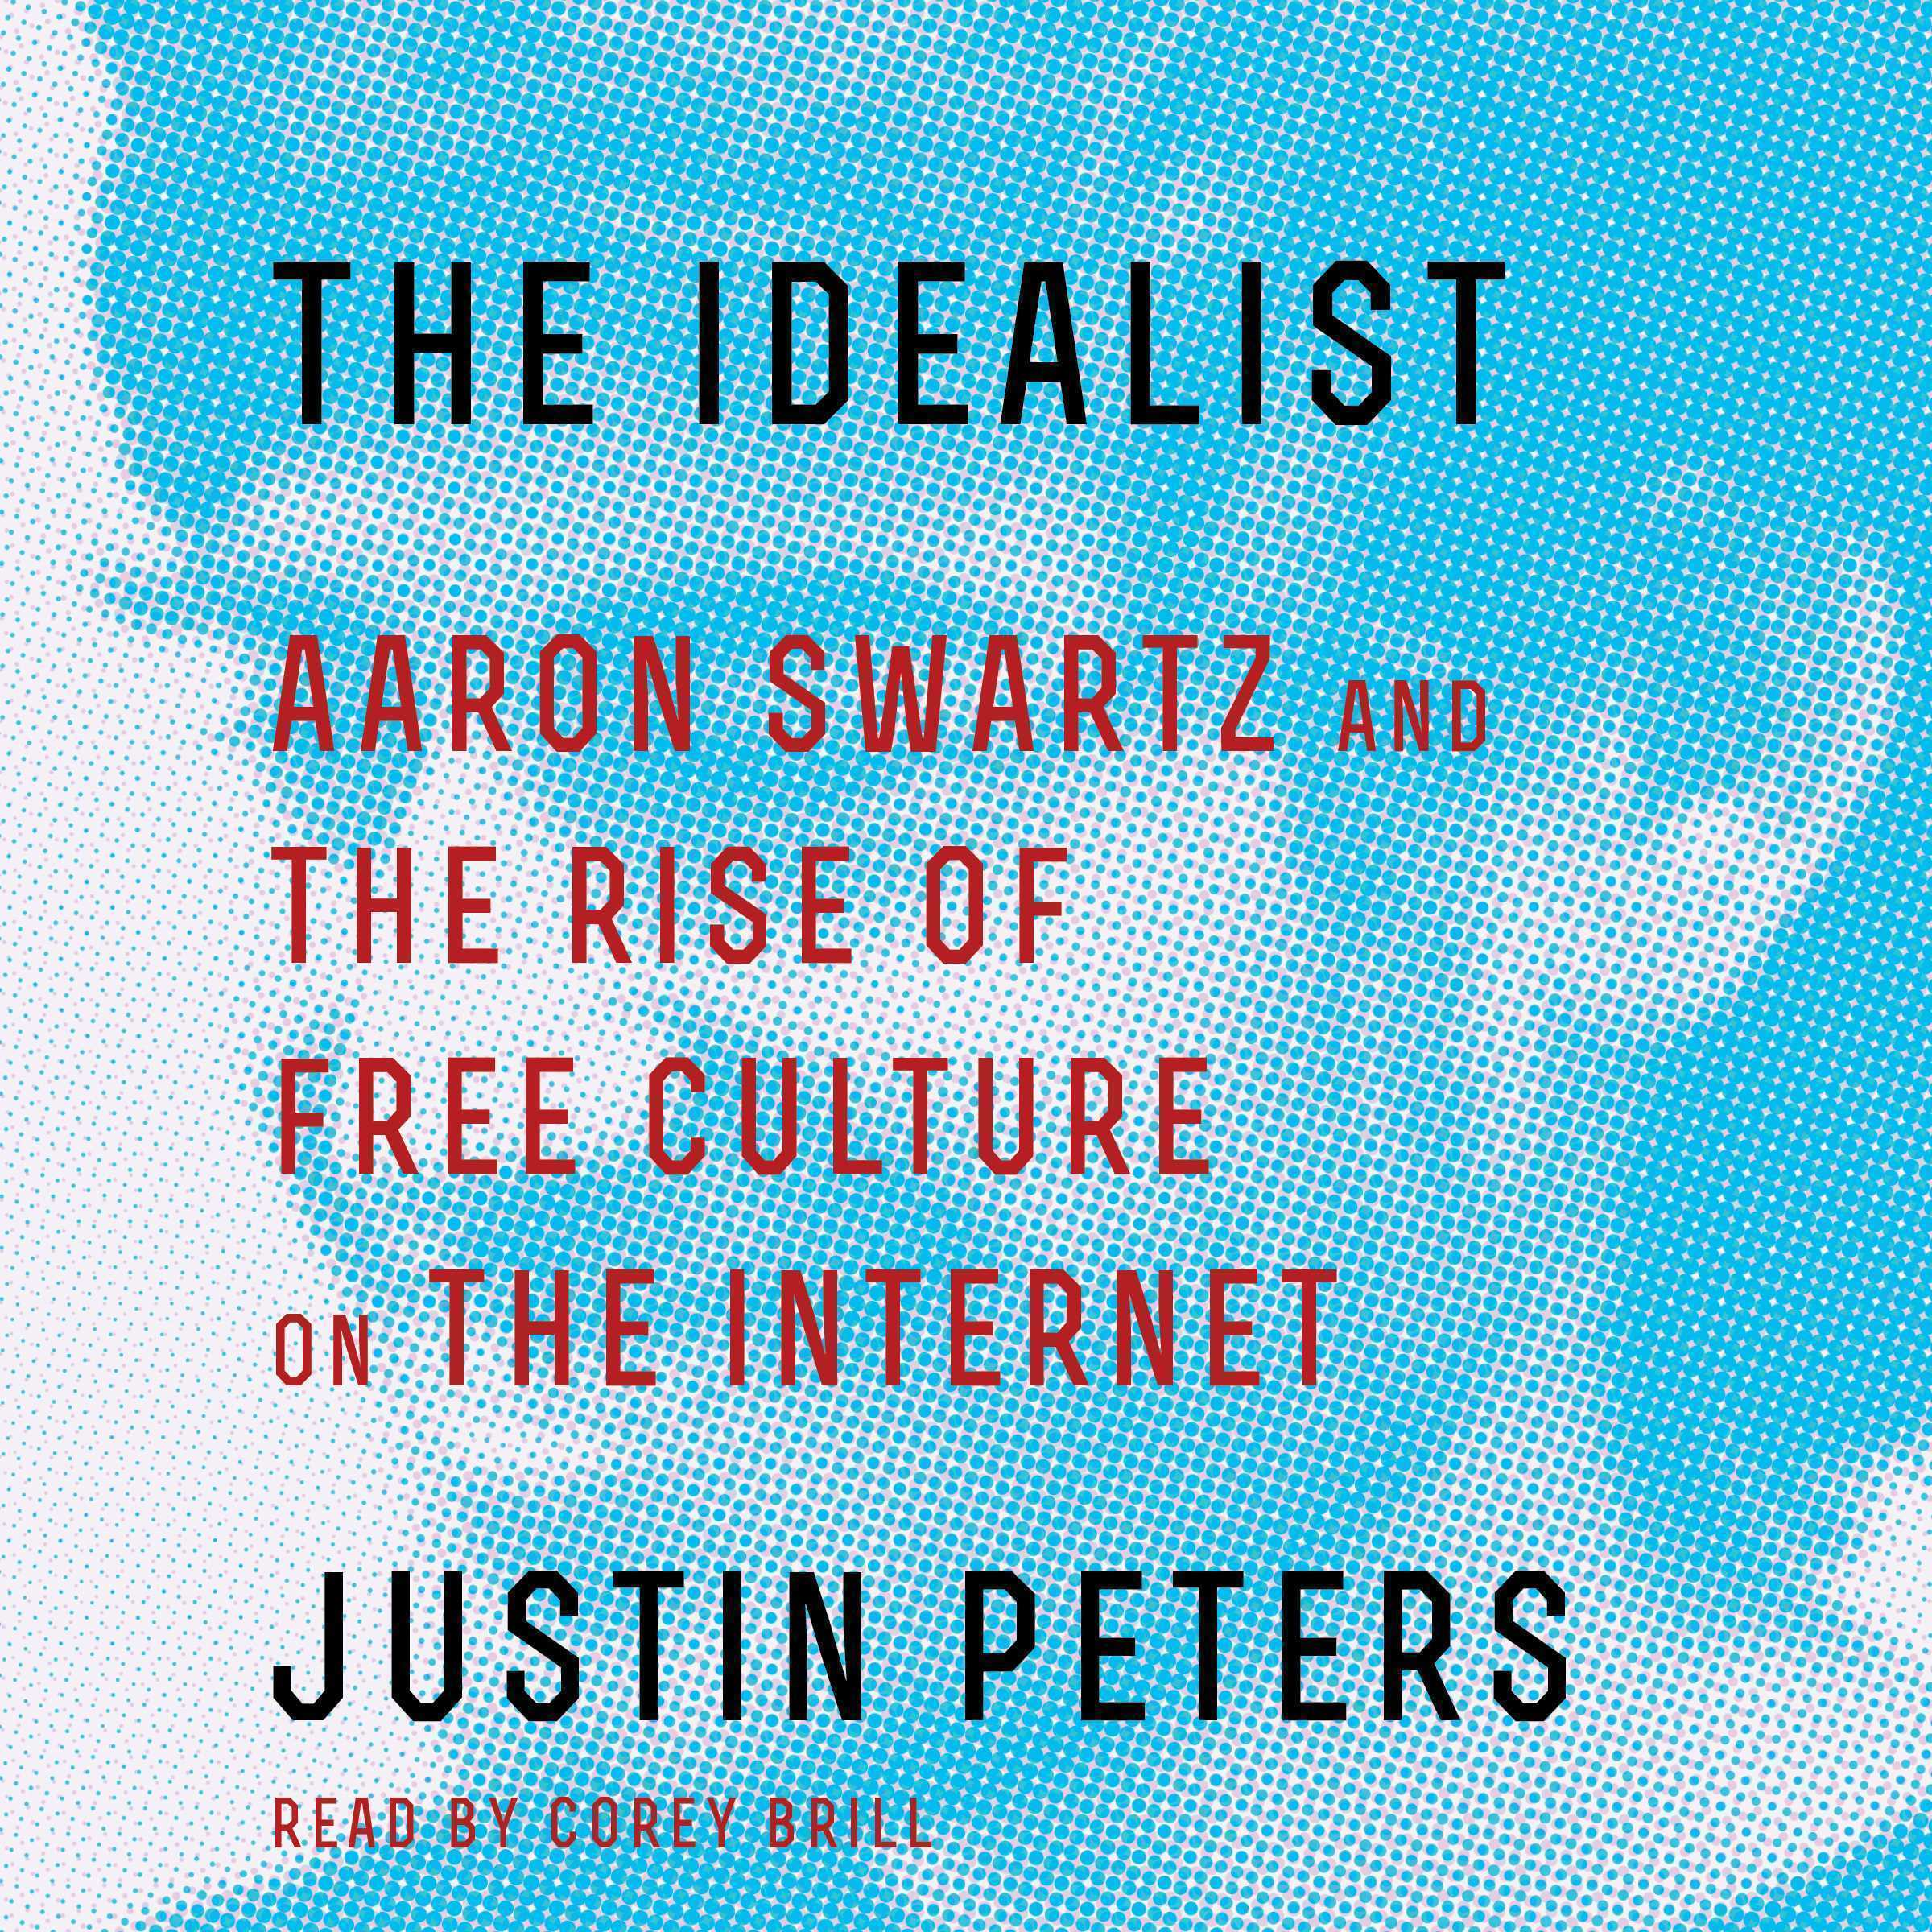 Printable The Idealist: Aaron Swartz and the Rise of Free Culture on the Internet Audiobook Cover Art